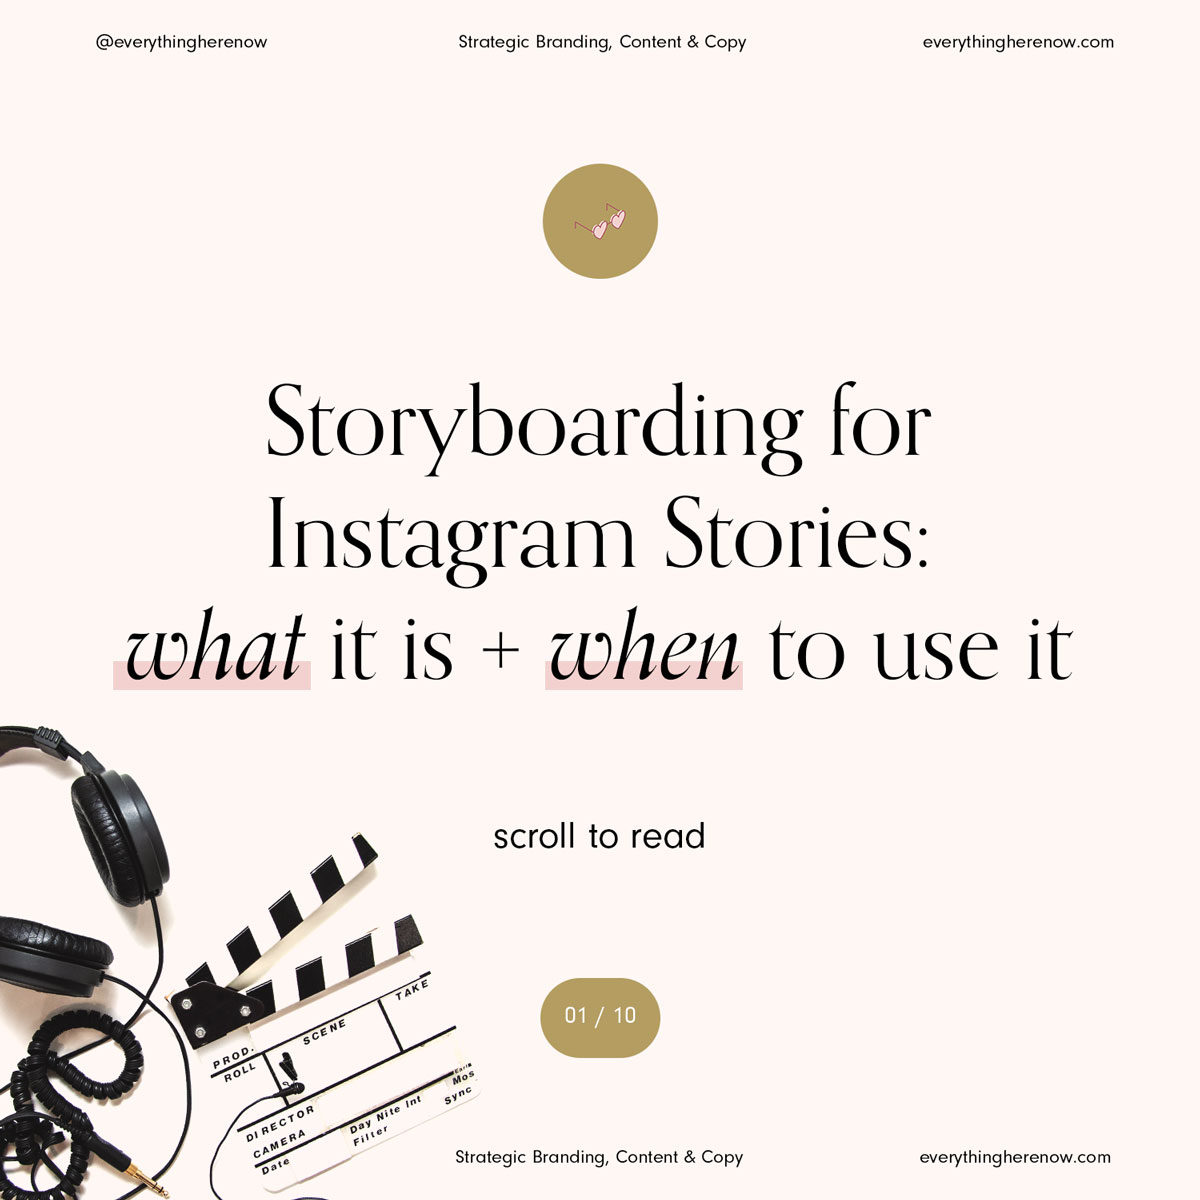 storyboarding-for-instagram-stories-what-it-is-and-when-to-use-it-by-everything-here-now-1